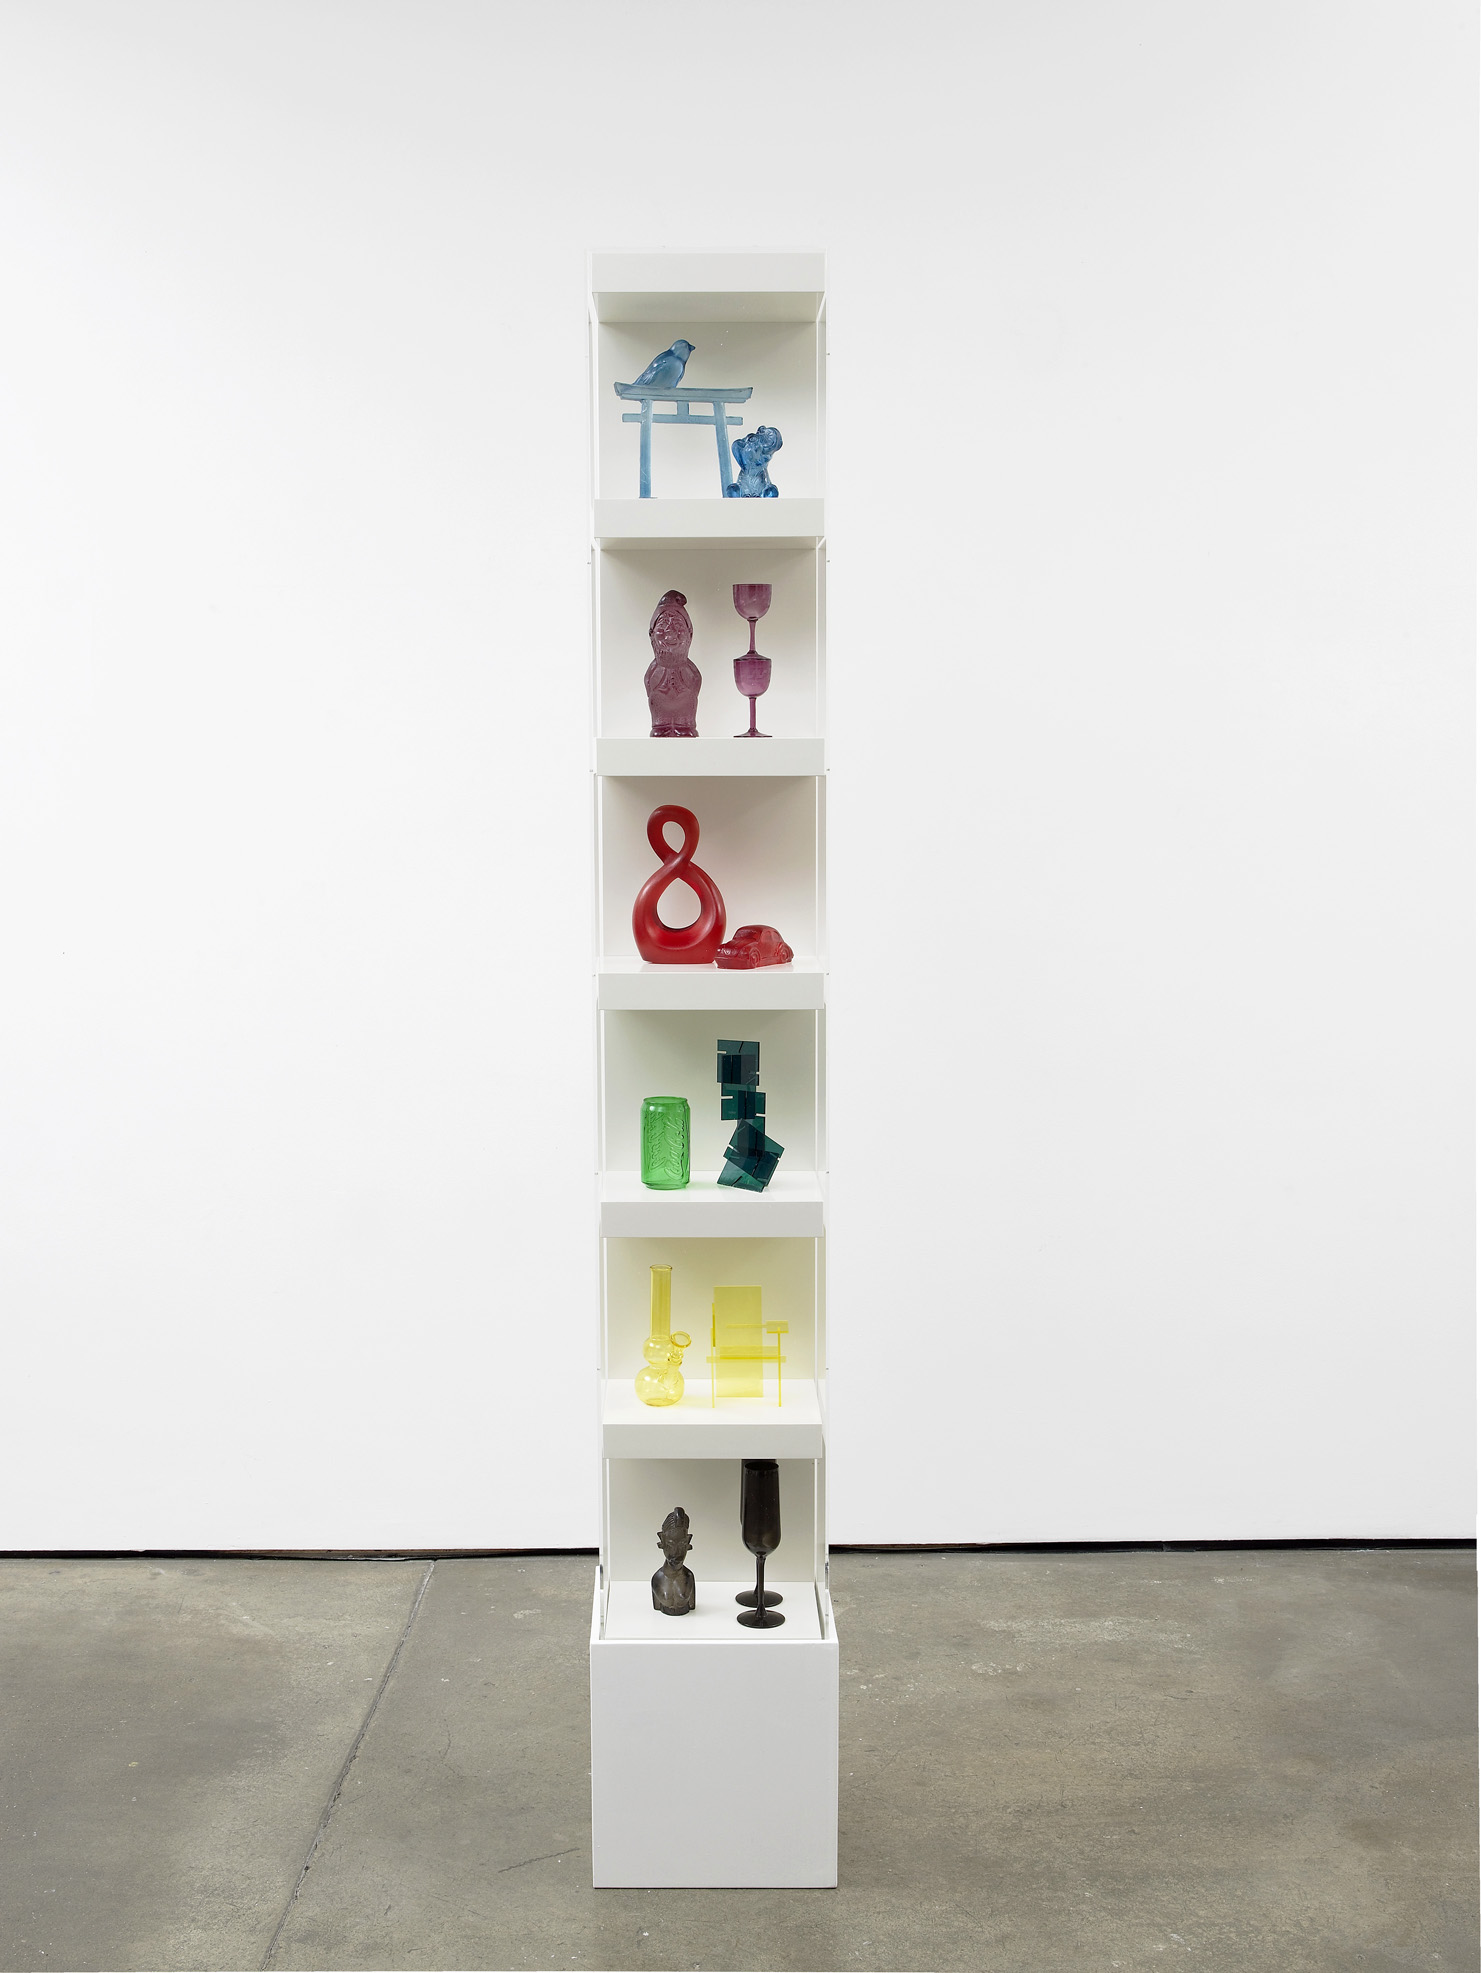 Untitled: Accessorised Column No. 5 2012 Various plastic, glass, and resin components, shelving units, and perspex case: 215 x 30 x 30 cm